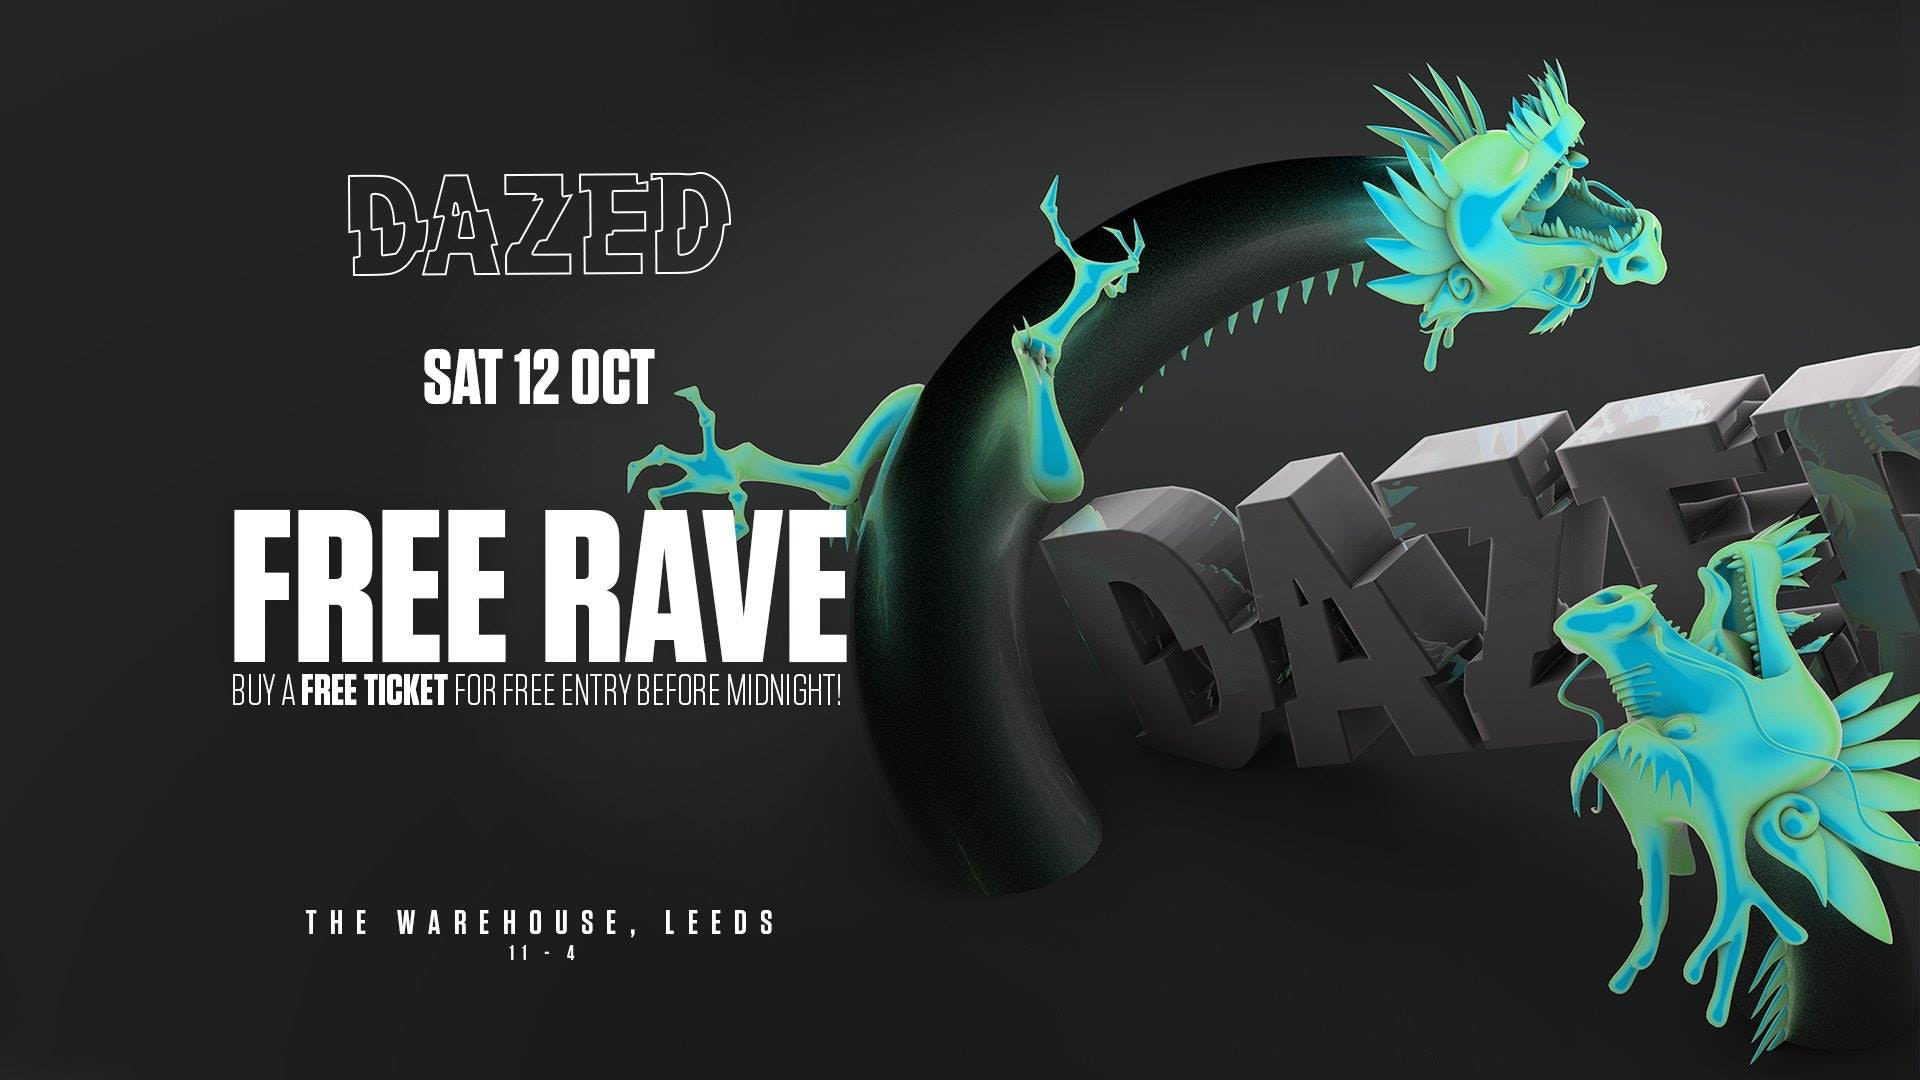 Dazed Presents: The Warehouse Free Rave! @ The Warehouse Leeds